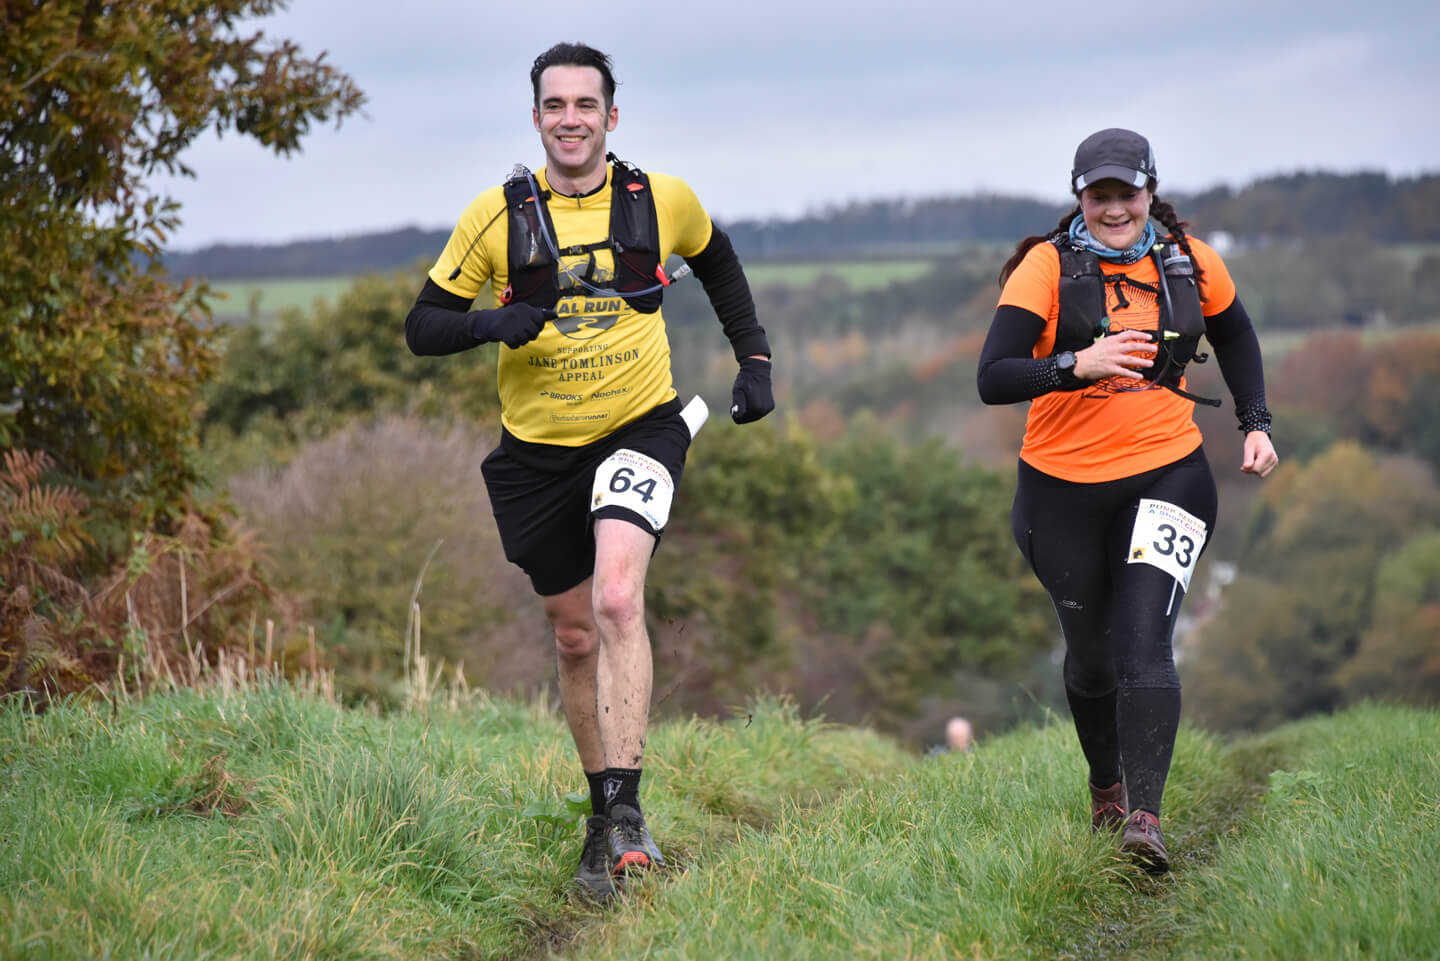 Man and woman running together during an ultramarathon in hilly woodland.